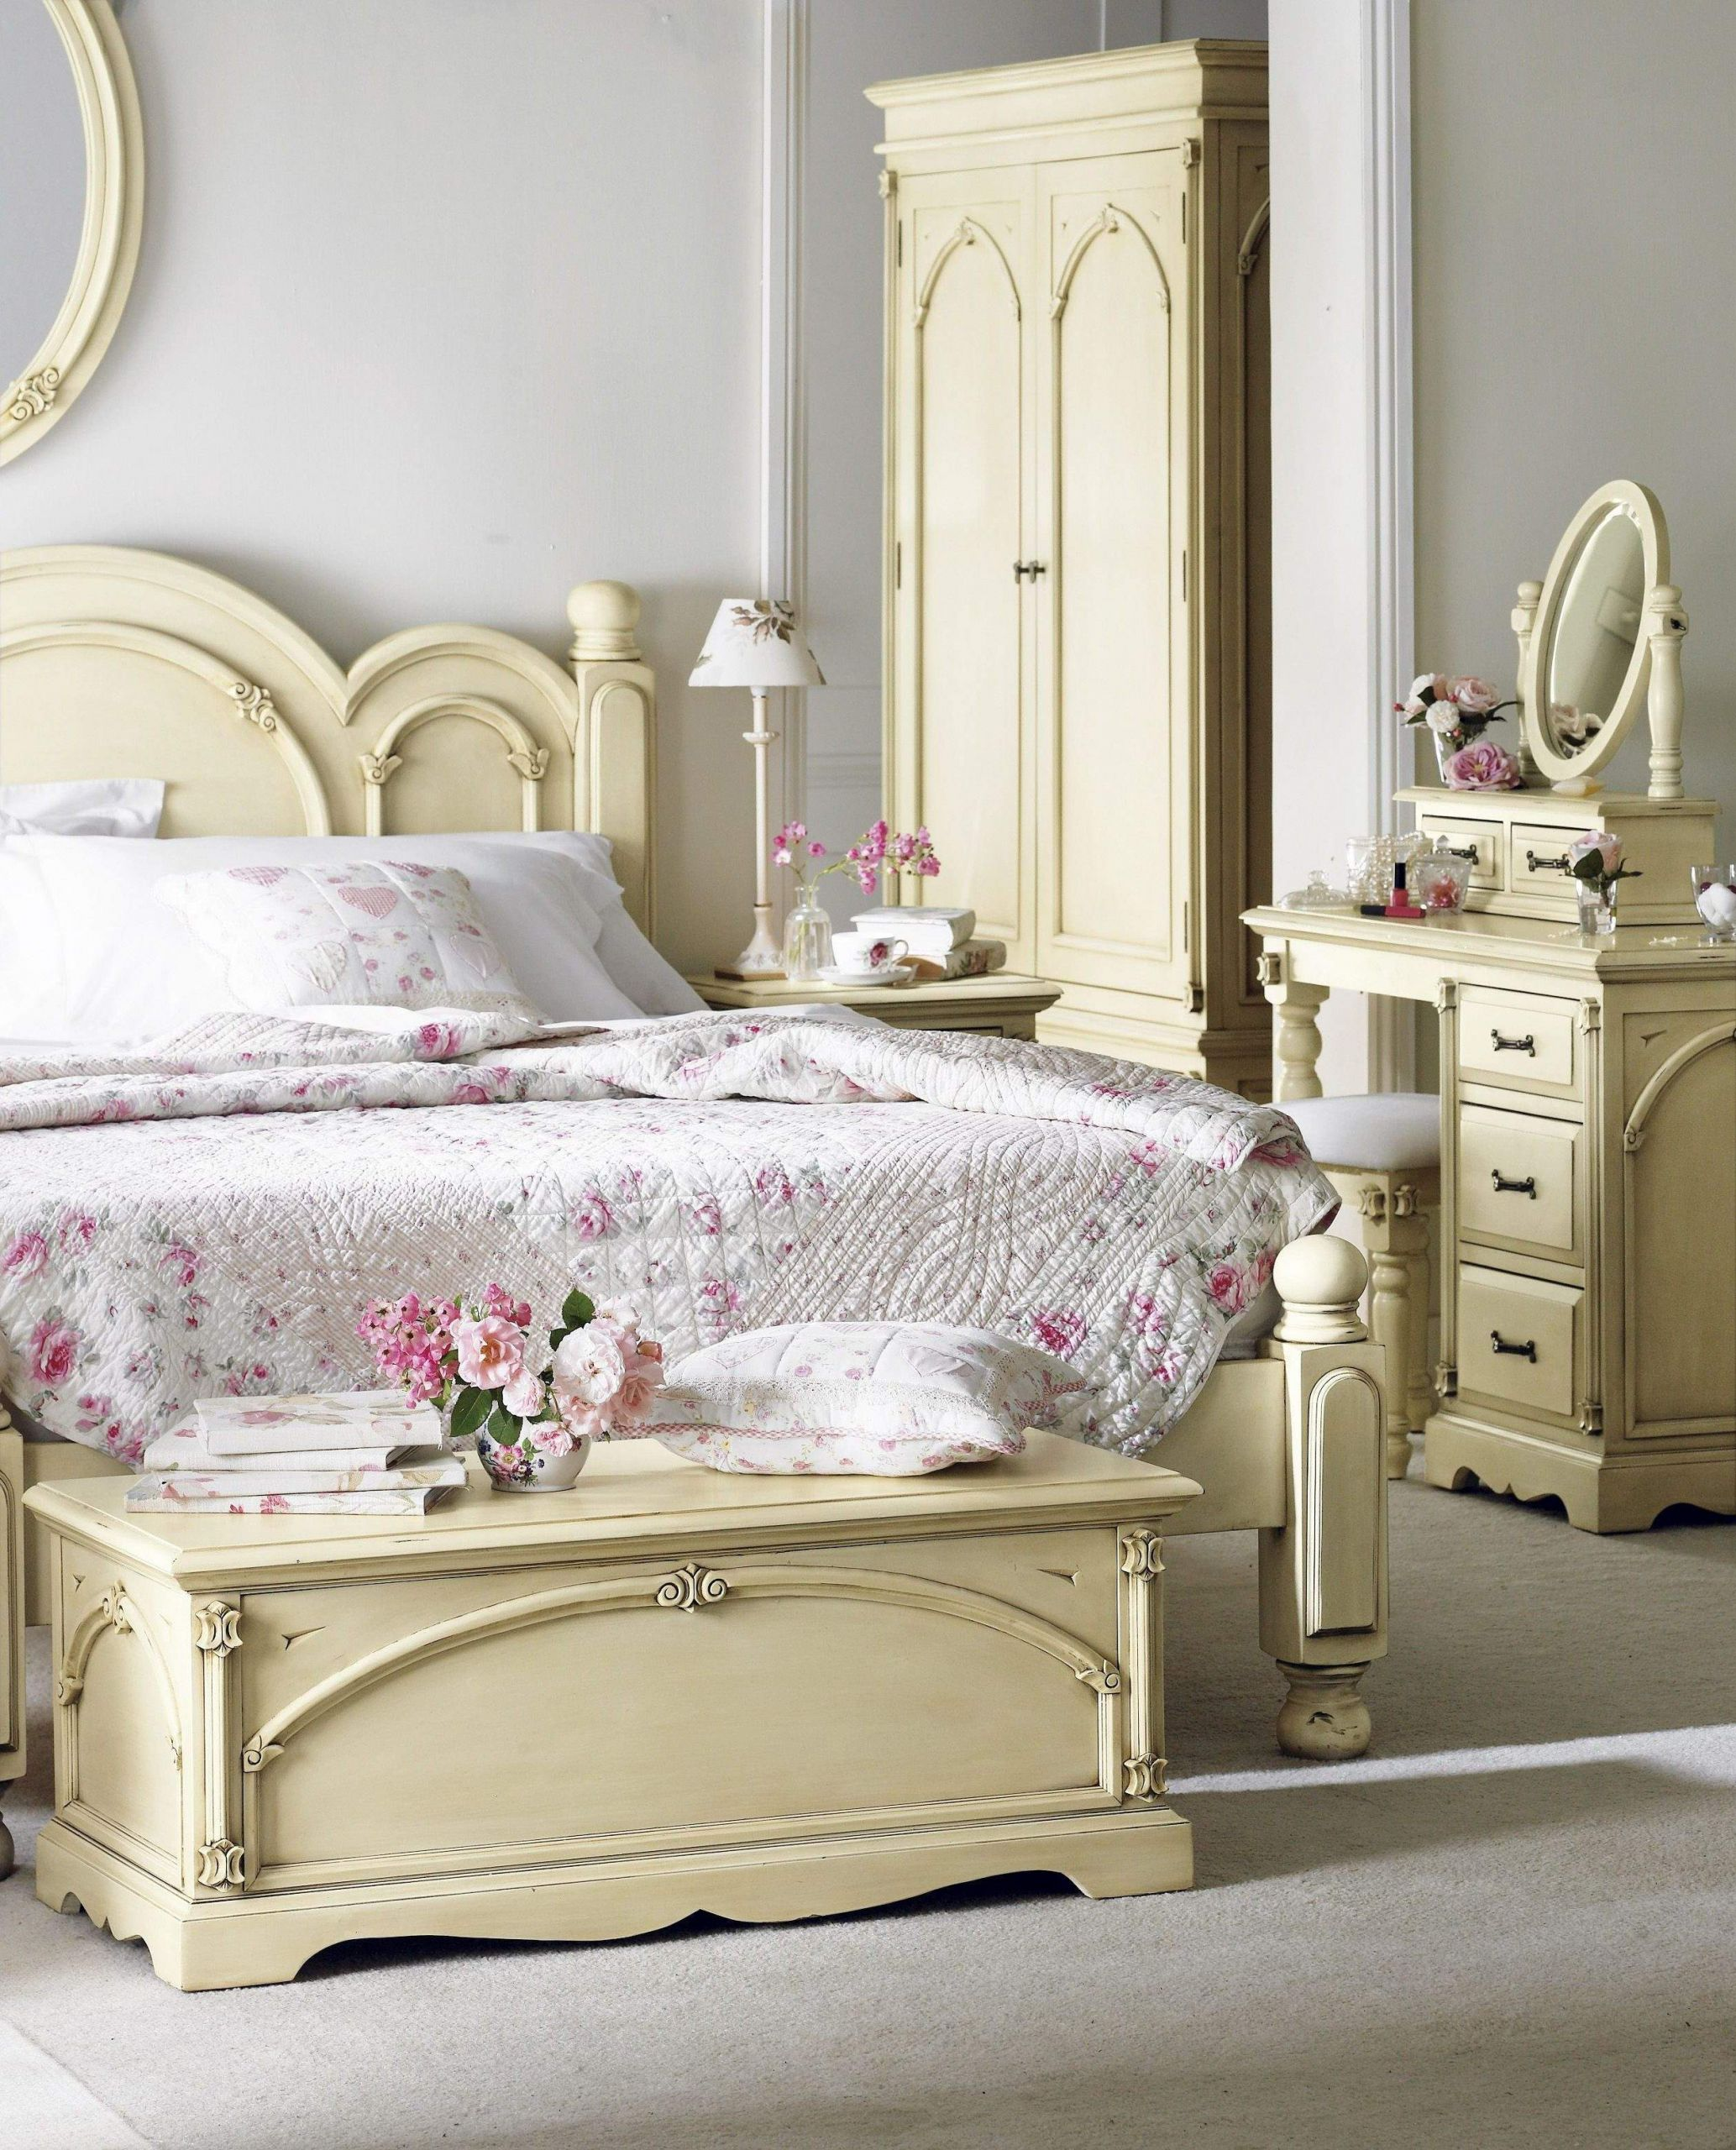 vintage style ideas bedrooms bedroom cool gray bedroom decor elegant chic 0d plus the best of vintage style ideas bedrooms